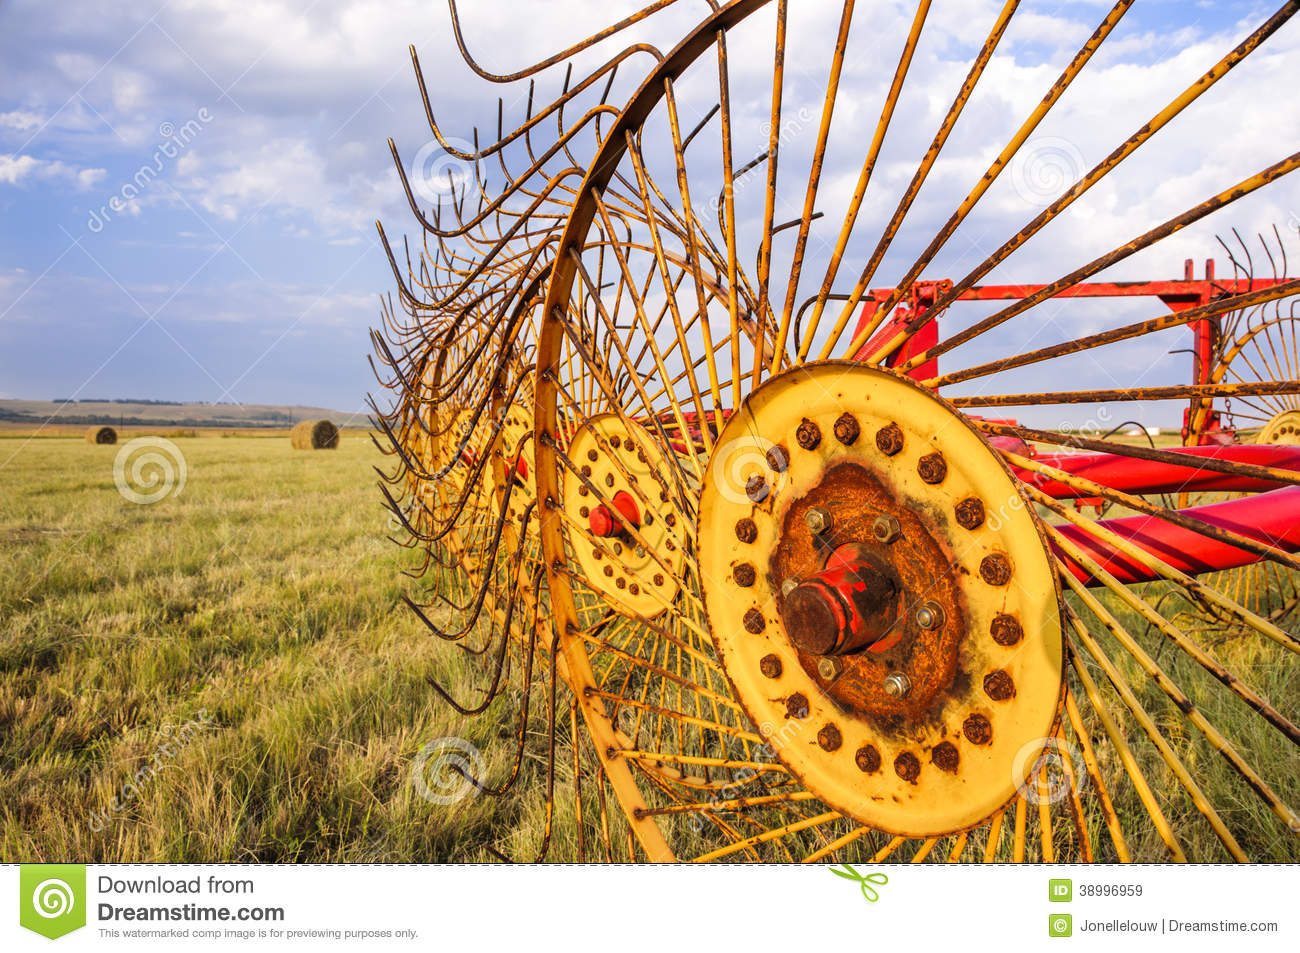 Agriculture Hay Rake Machine For Bales Stock Image - Image